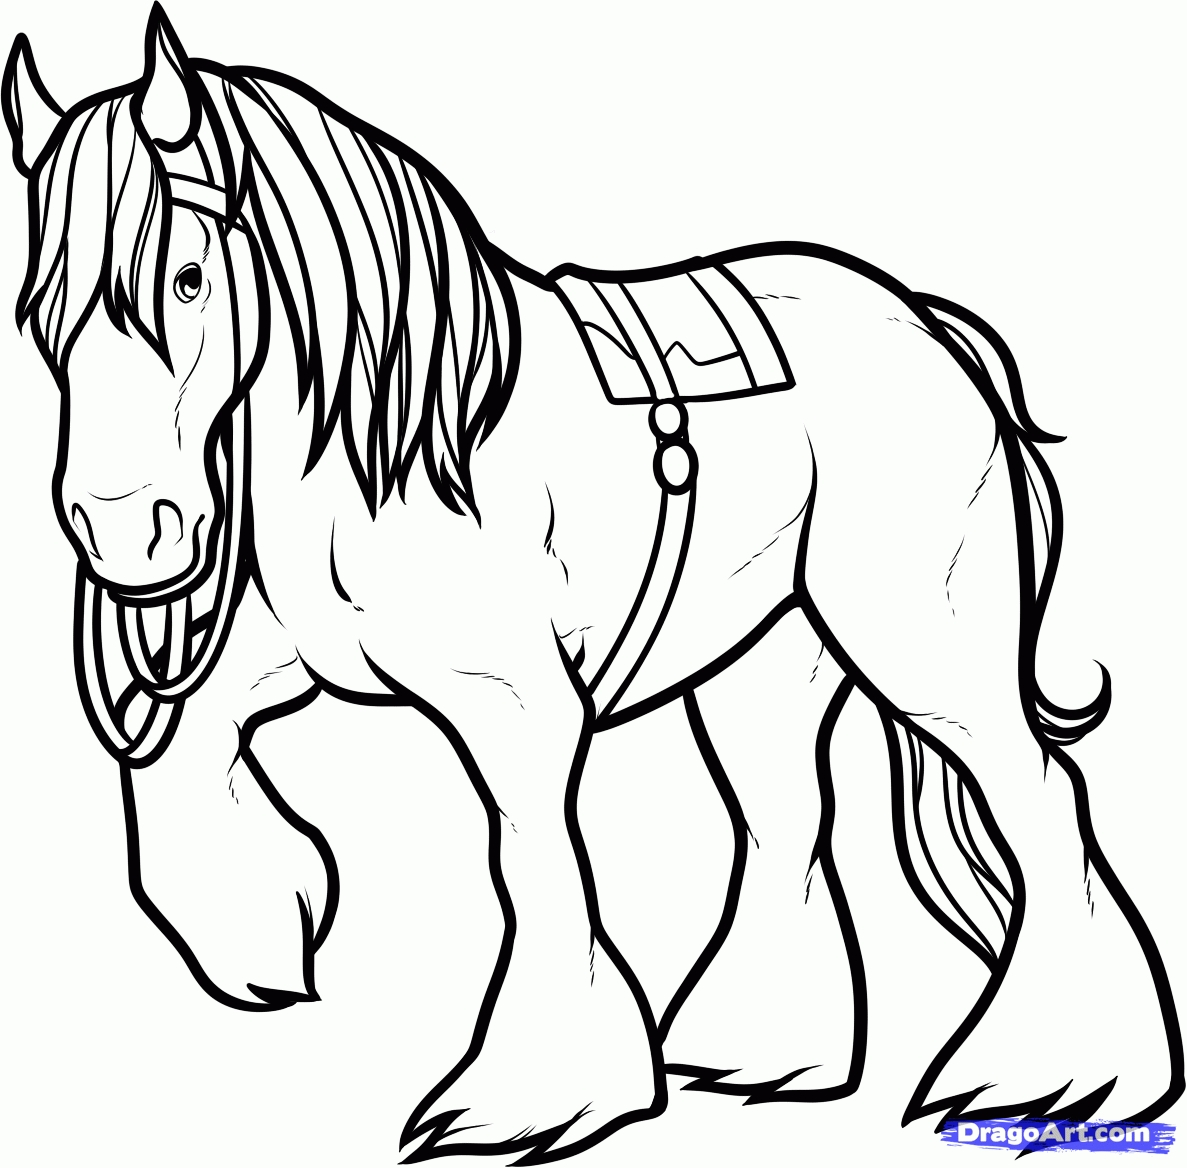 A Clydesdale | Horse coloring books, Horse coloring pages, Horse ... | 1168x1187